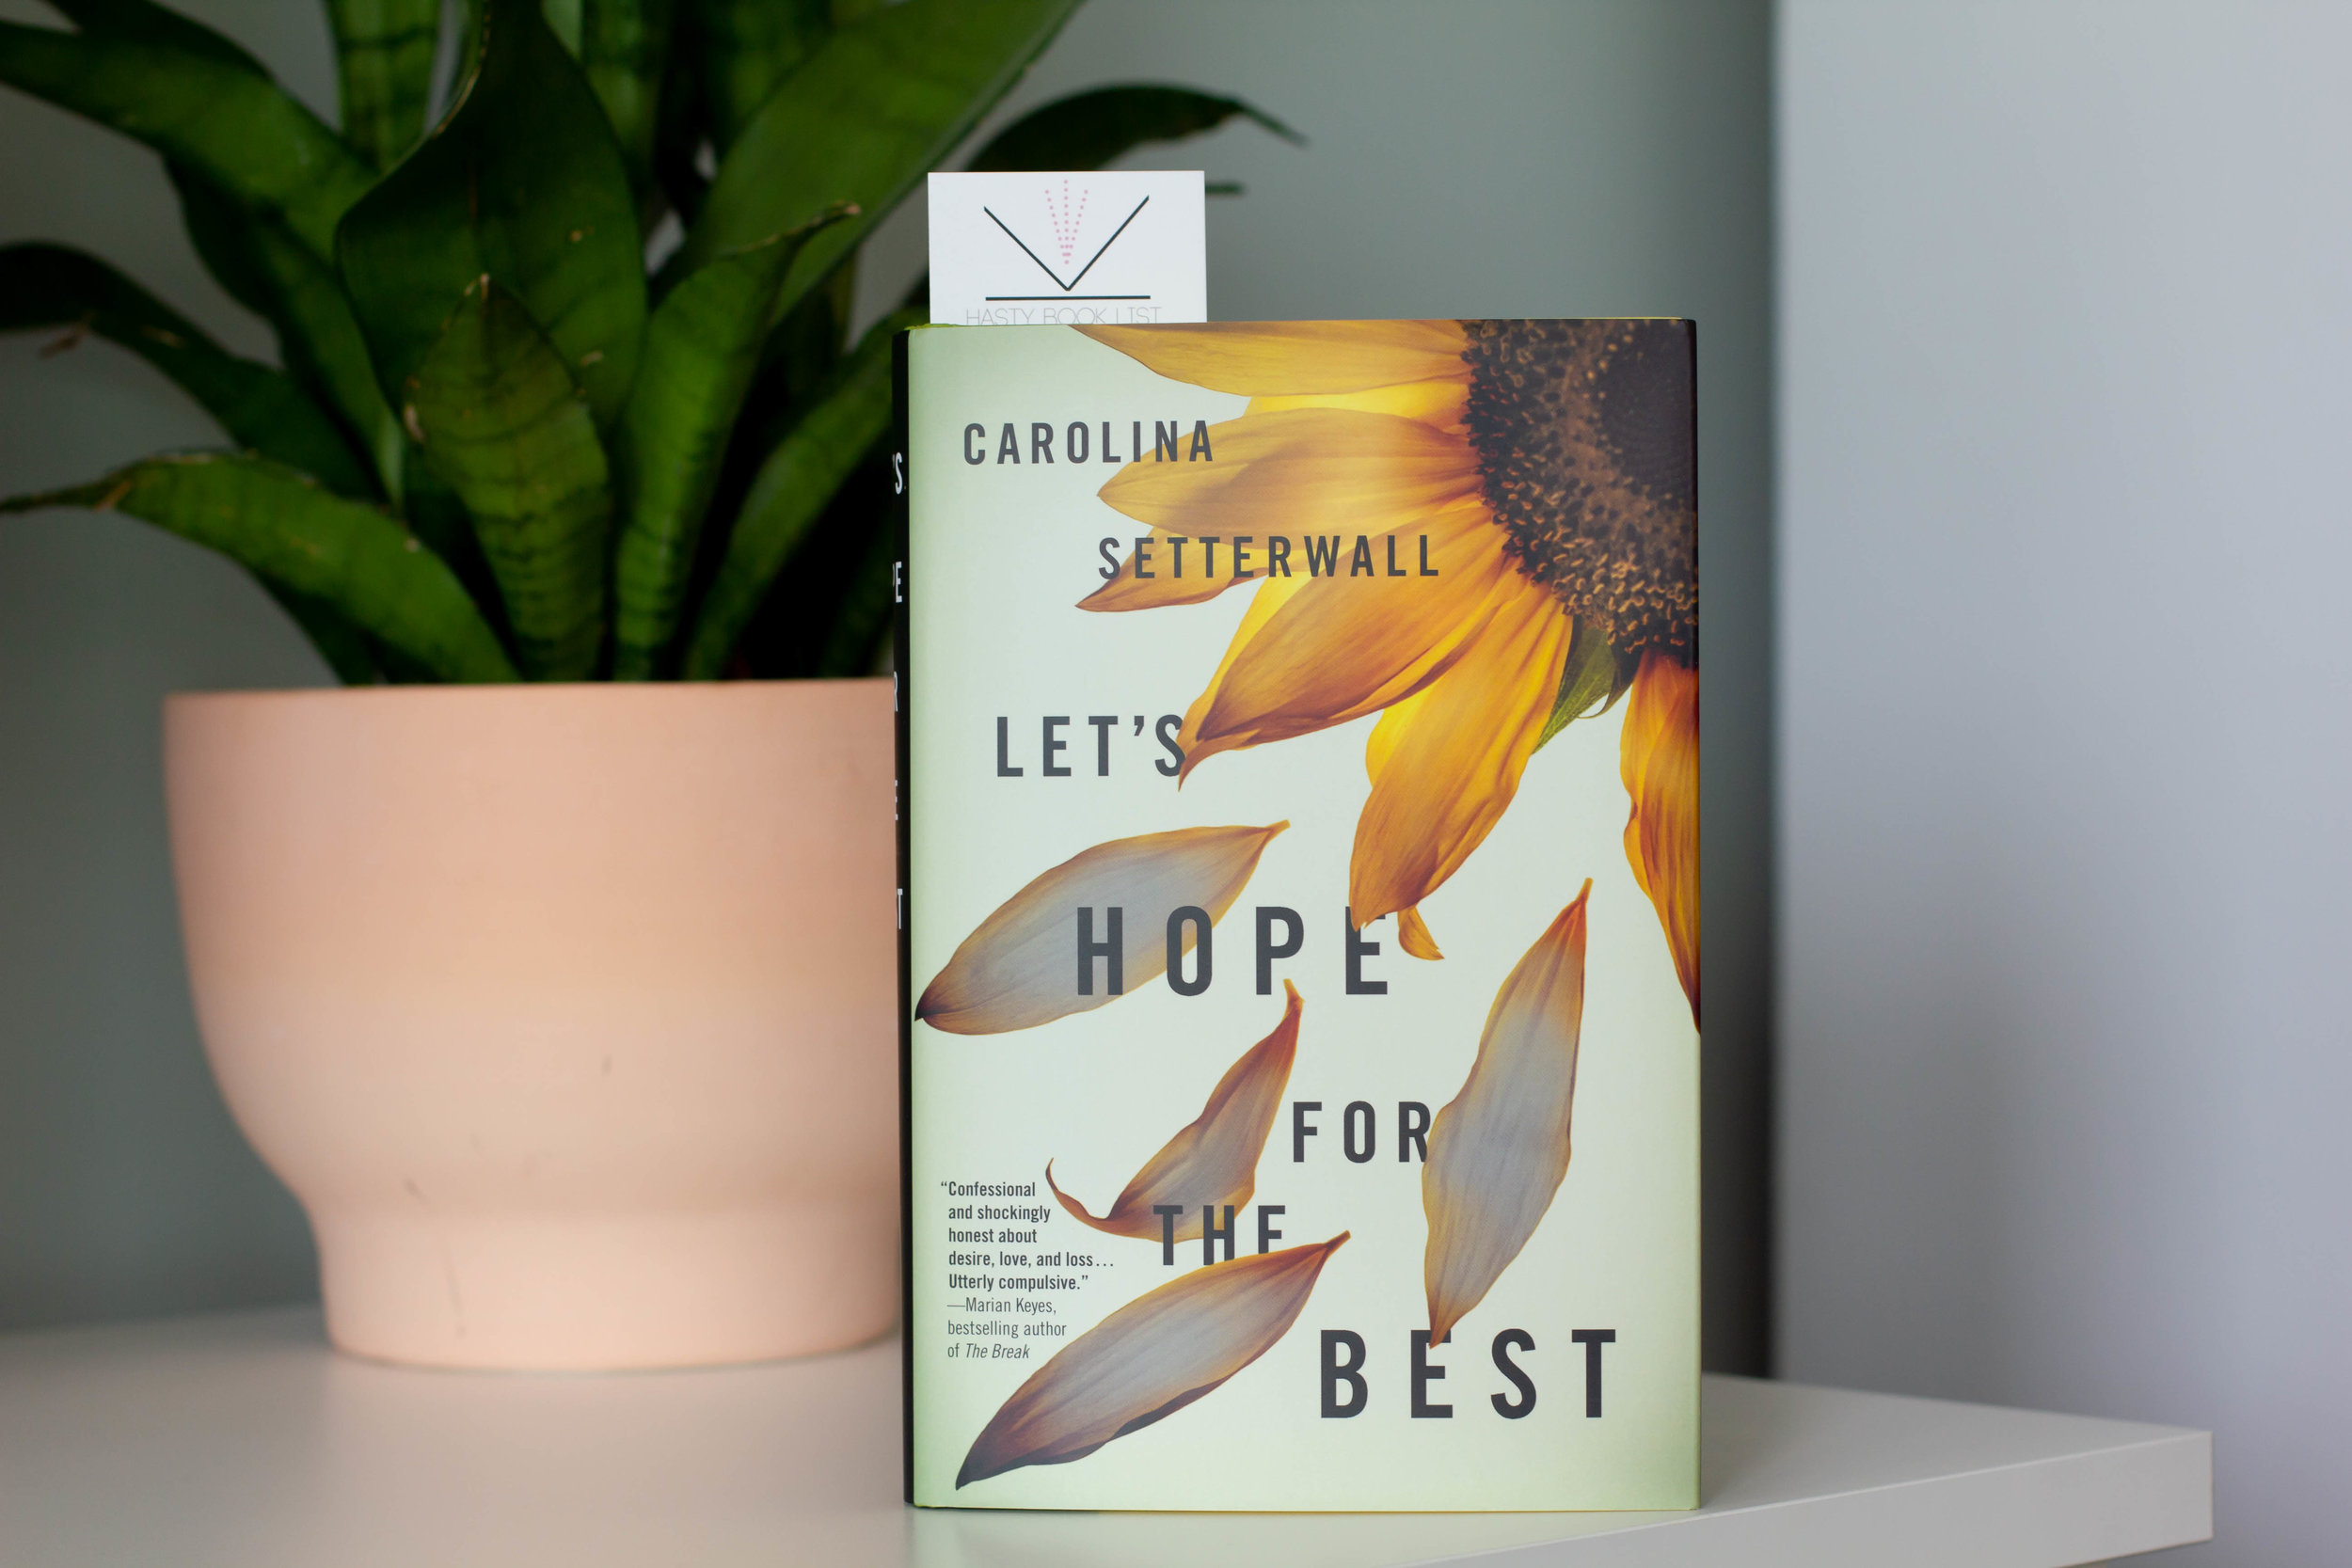 Let's Hope for the Best by Carolina Setterwall - A striking feat of auto-fiction, written in direct address to Setterwall's late partner, LET'S HOPE FOR THE BEST is a stylistic tour-de force.